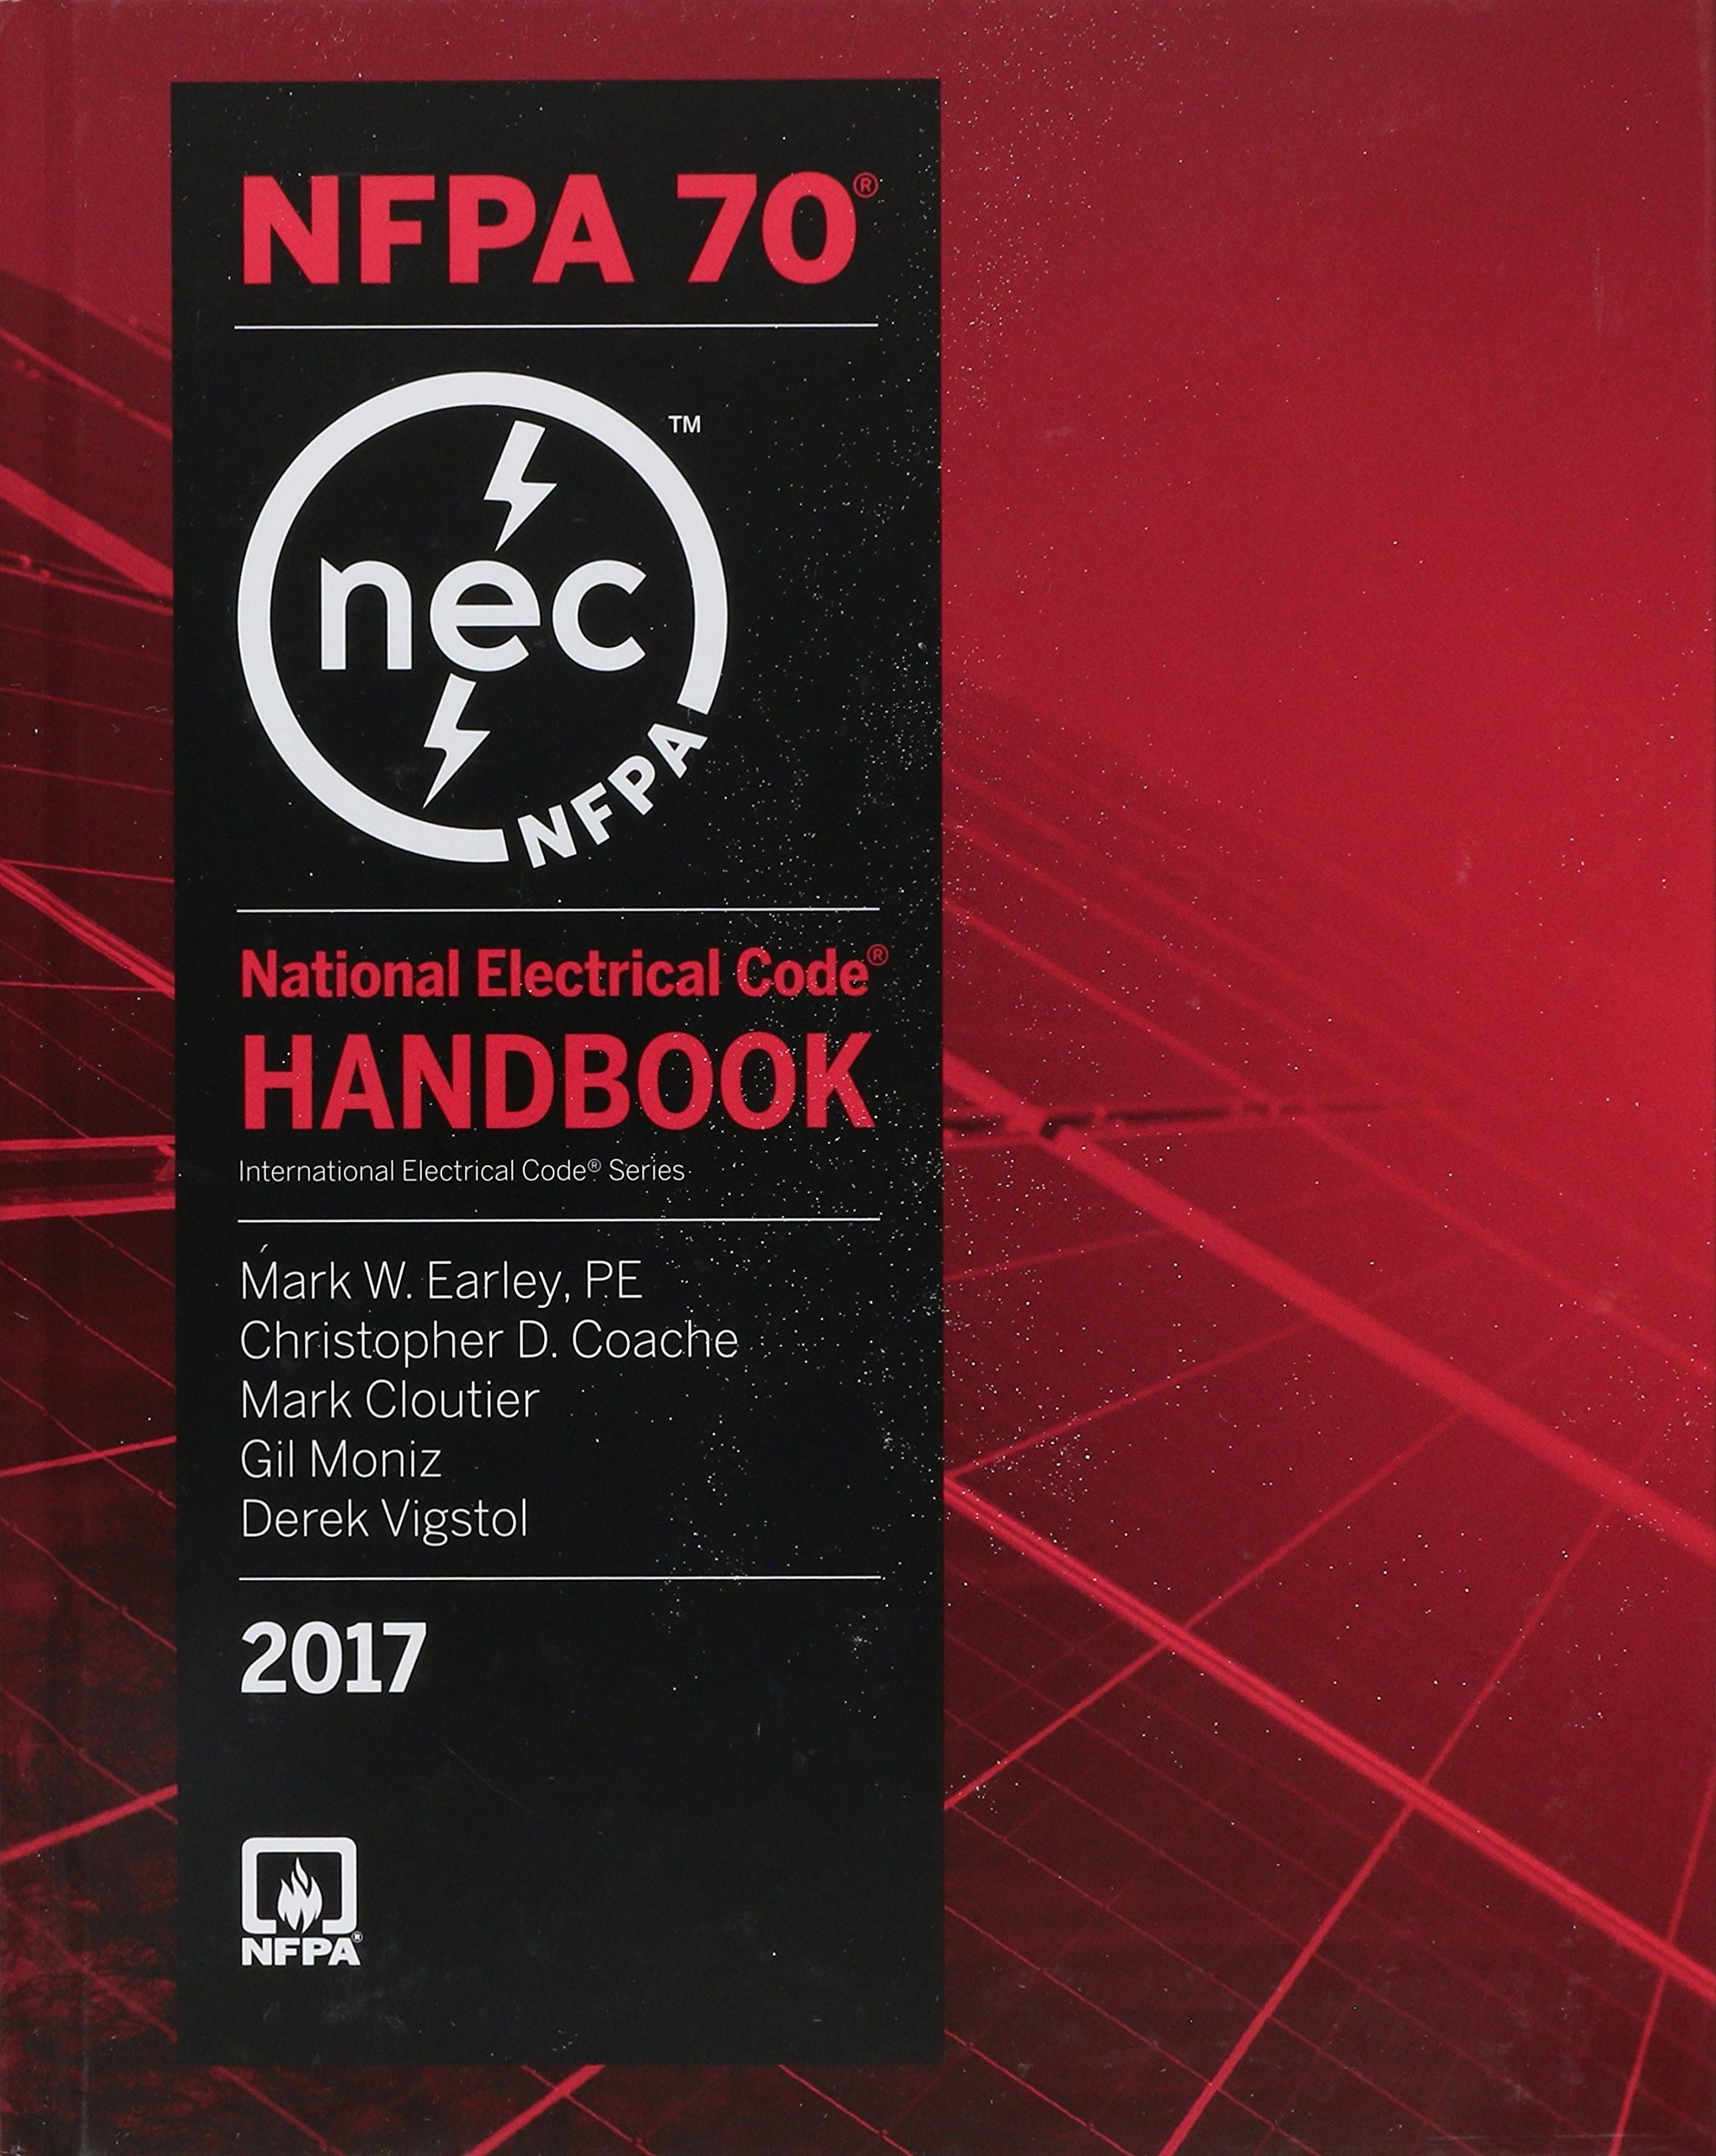 National Electrical Code 2017 Handbook (International Electrical Code) by Delmar Cengage Learning (Image #1)